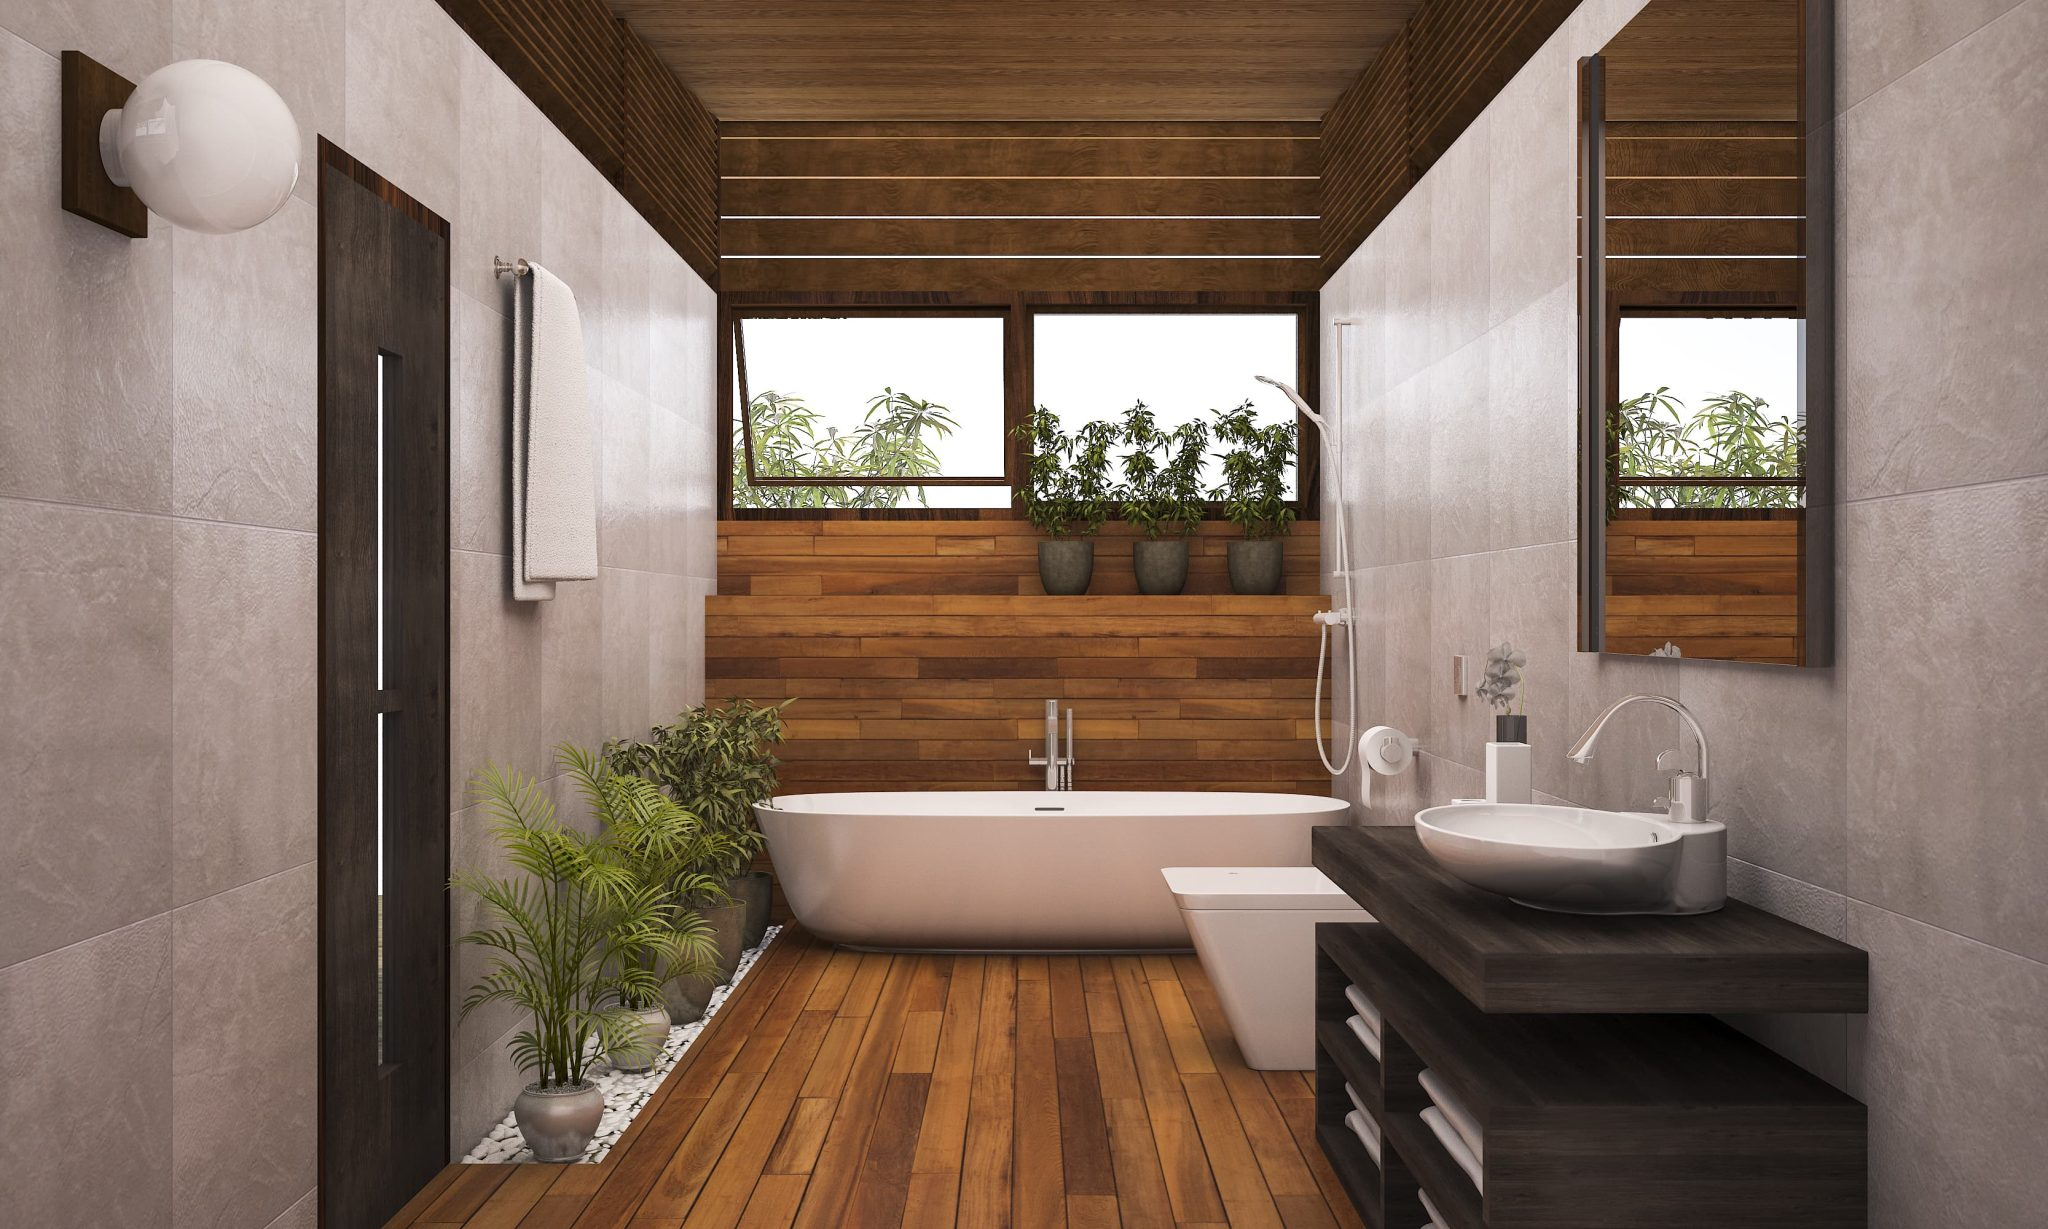 How do I incorporate wood elements into my bathroom